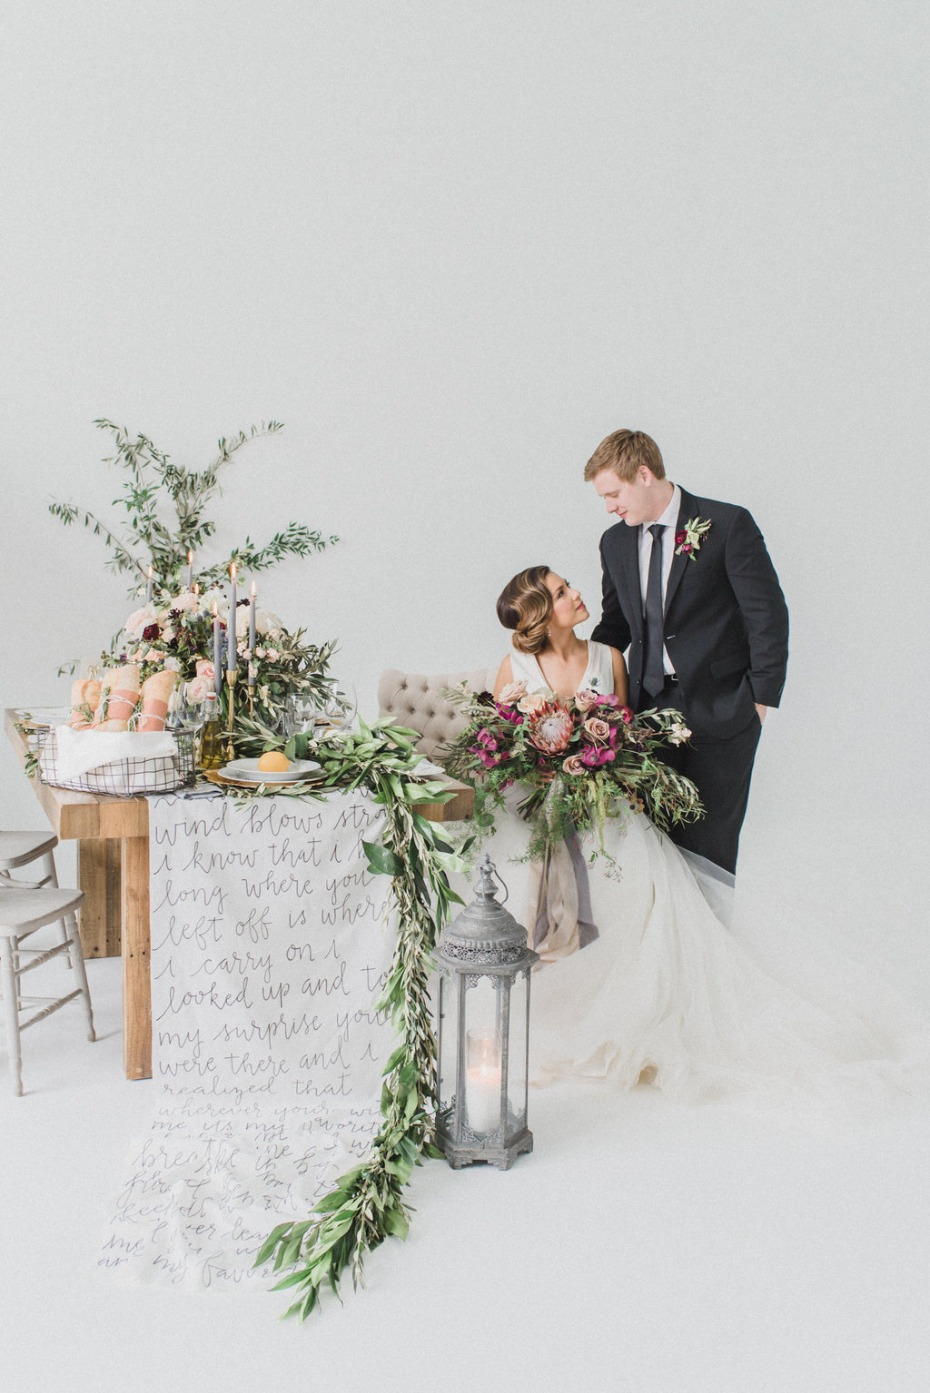 Old world inspired wedding ideas